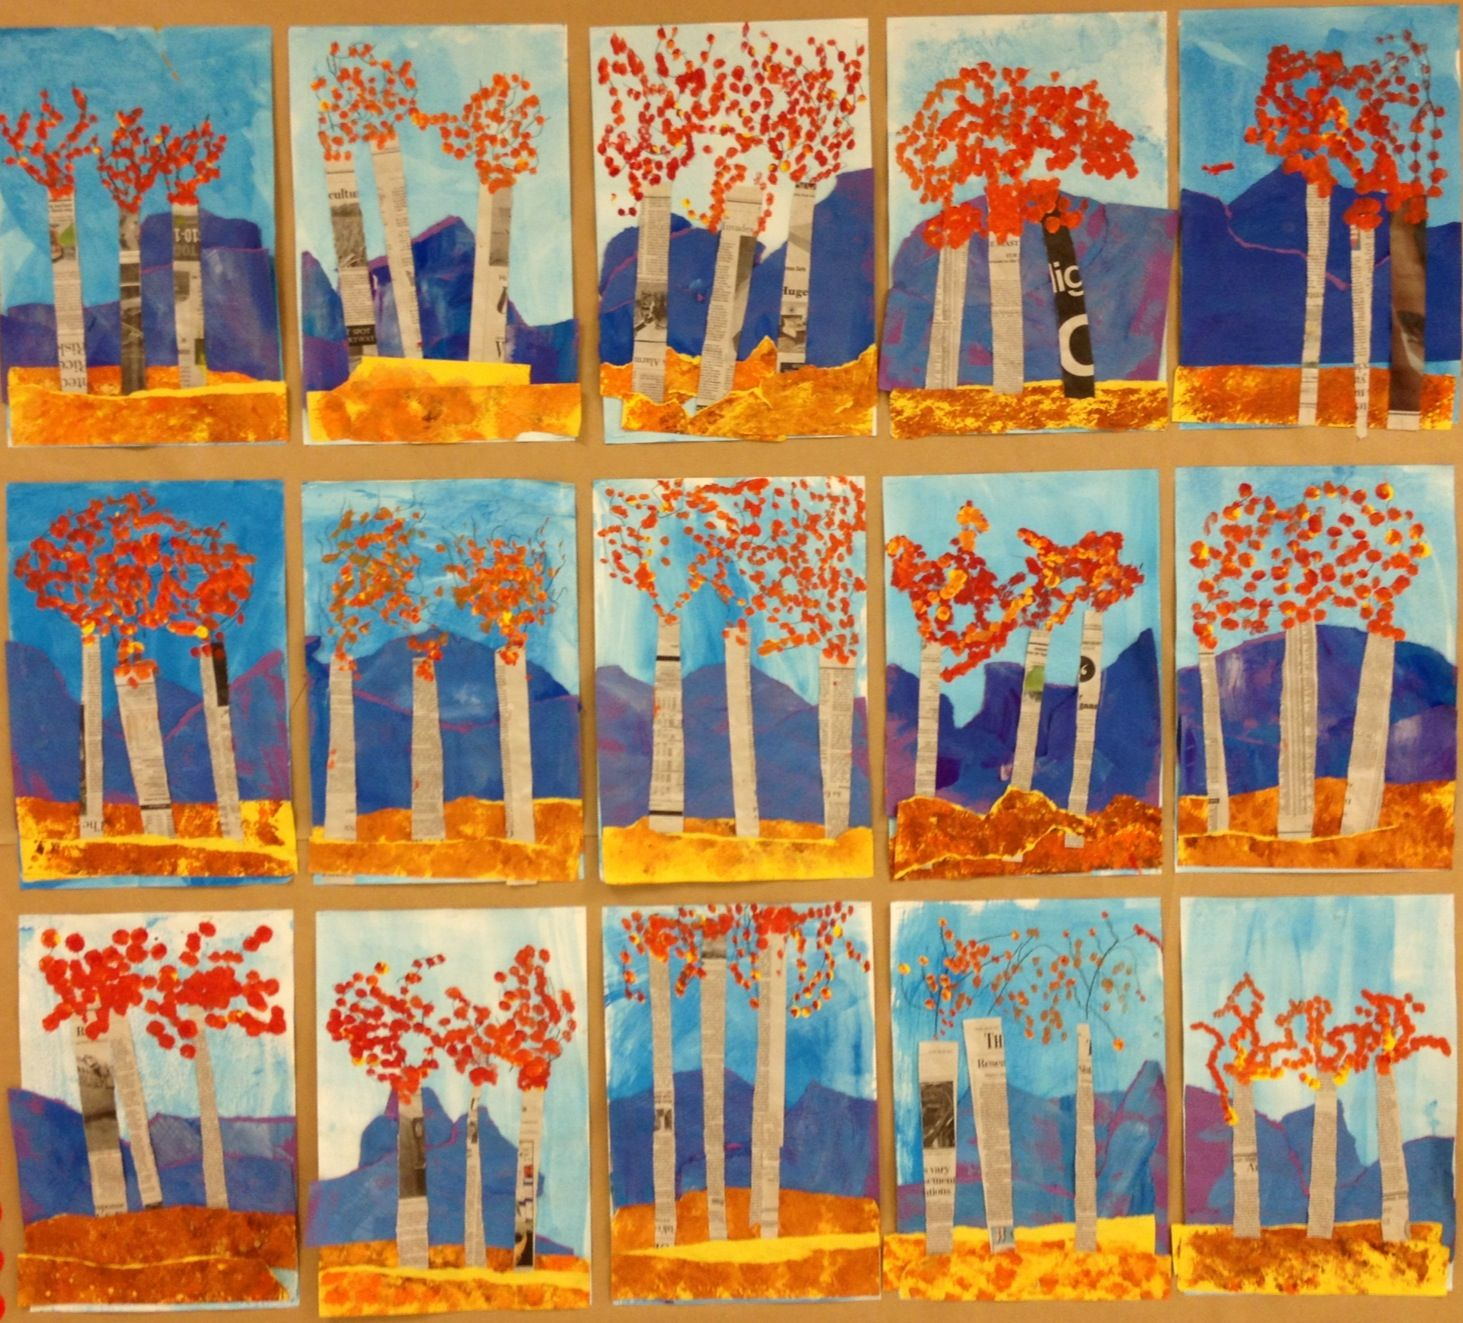 Grade 1 Newspaper Trees And Textured Mountain Fall Landscape Collage